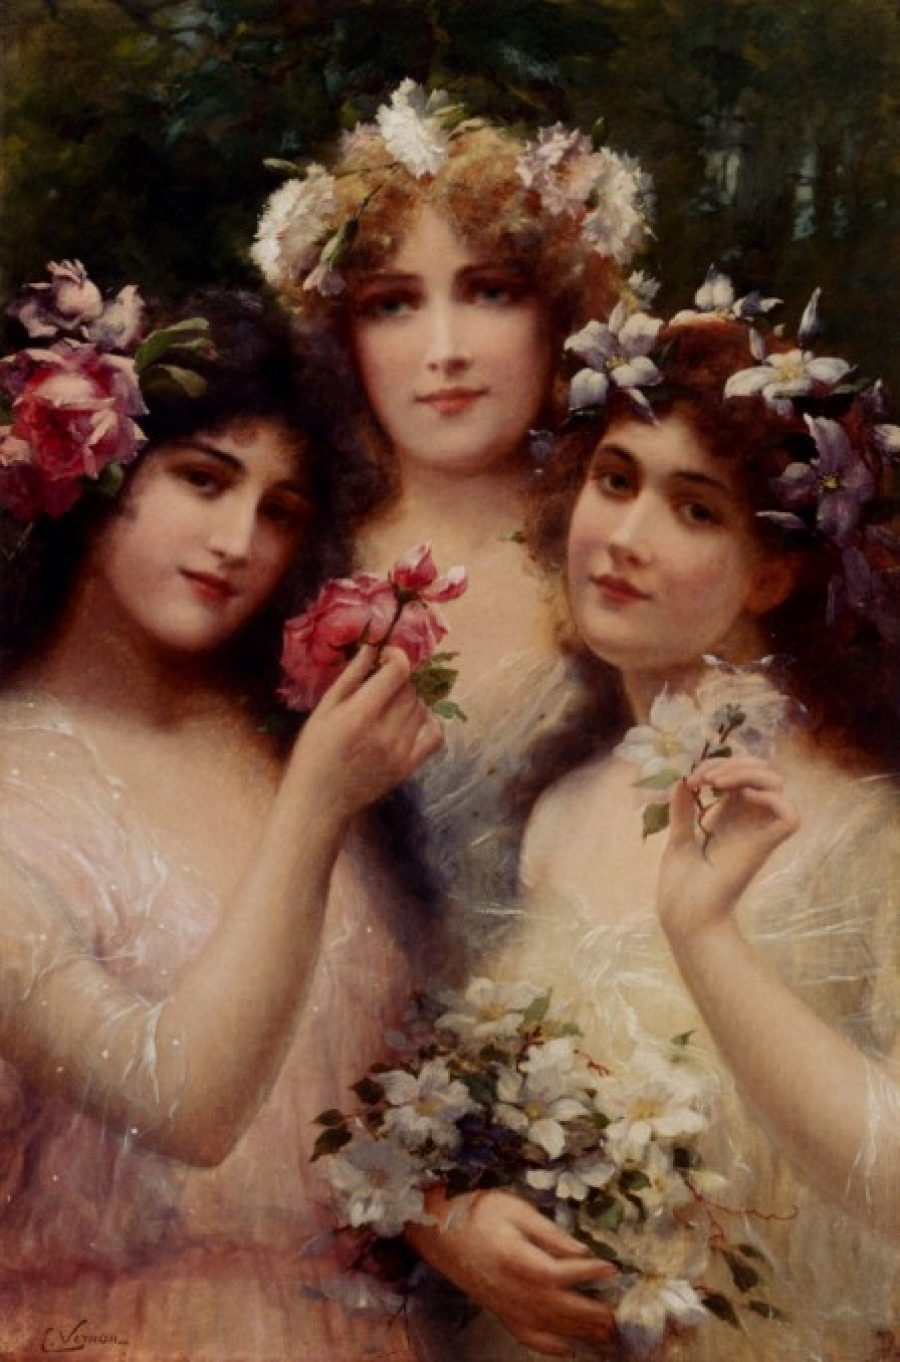 The Three Graces by Emile Vernon - Date unknown